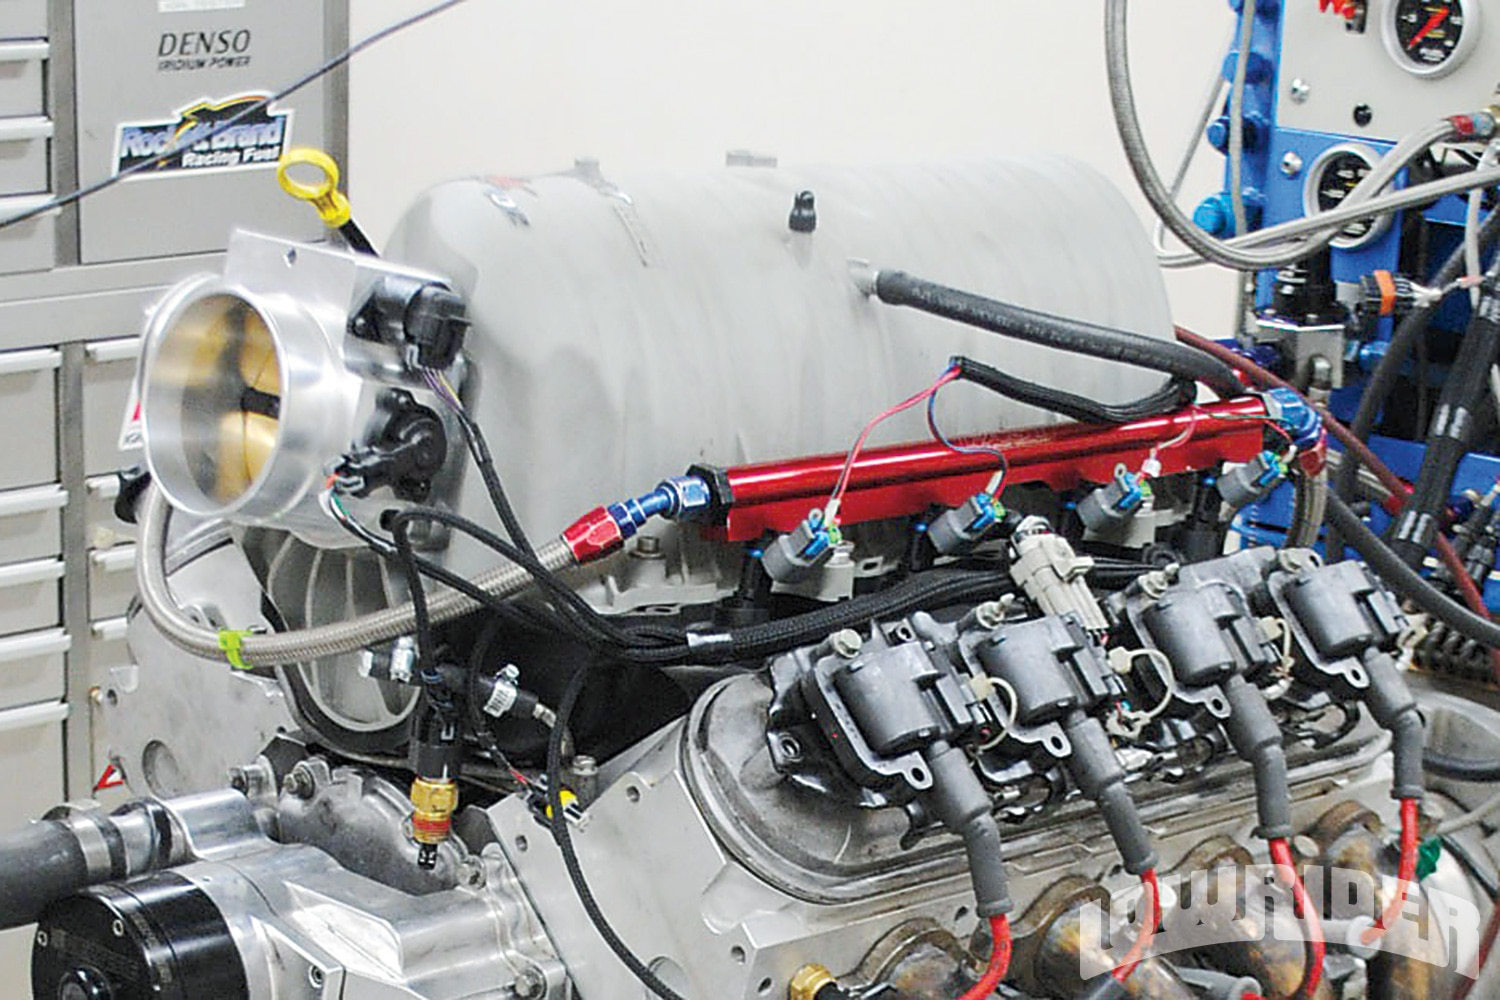 <strong>10</strong>. The final upgrade for the test mules was this LSXRT intake and matching 102mm throttle body from Fast. Possibly oversized for these smaller motors, the intake insured we would get the maximum performance from the TEA heads and Crane cam. Note also the 42-pound injectors and wiring harness for the Holley Dominator EFI system.